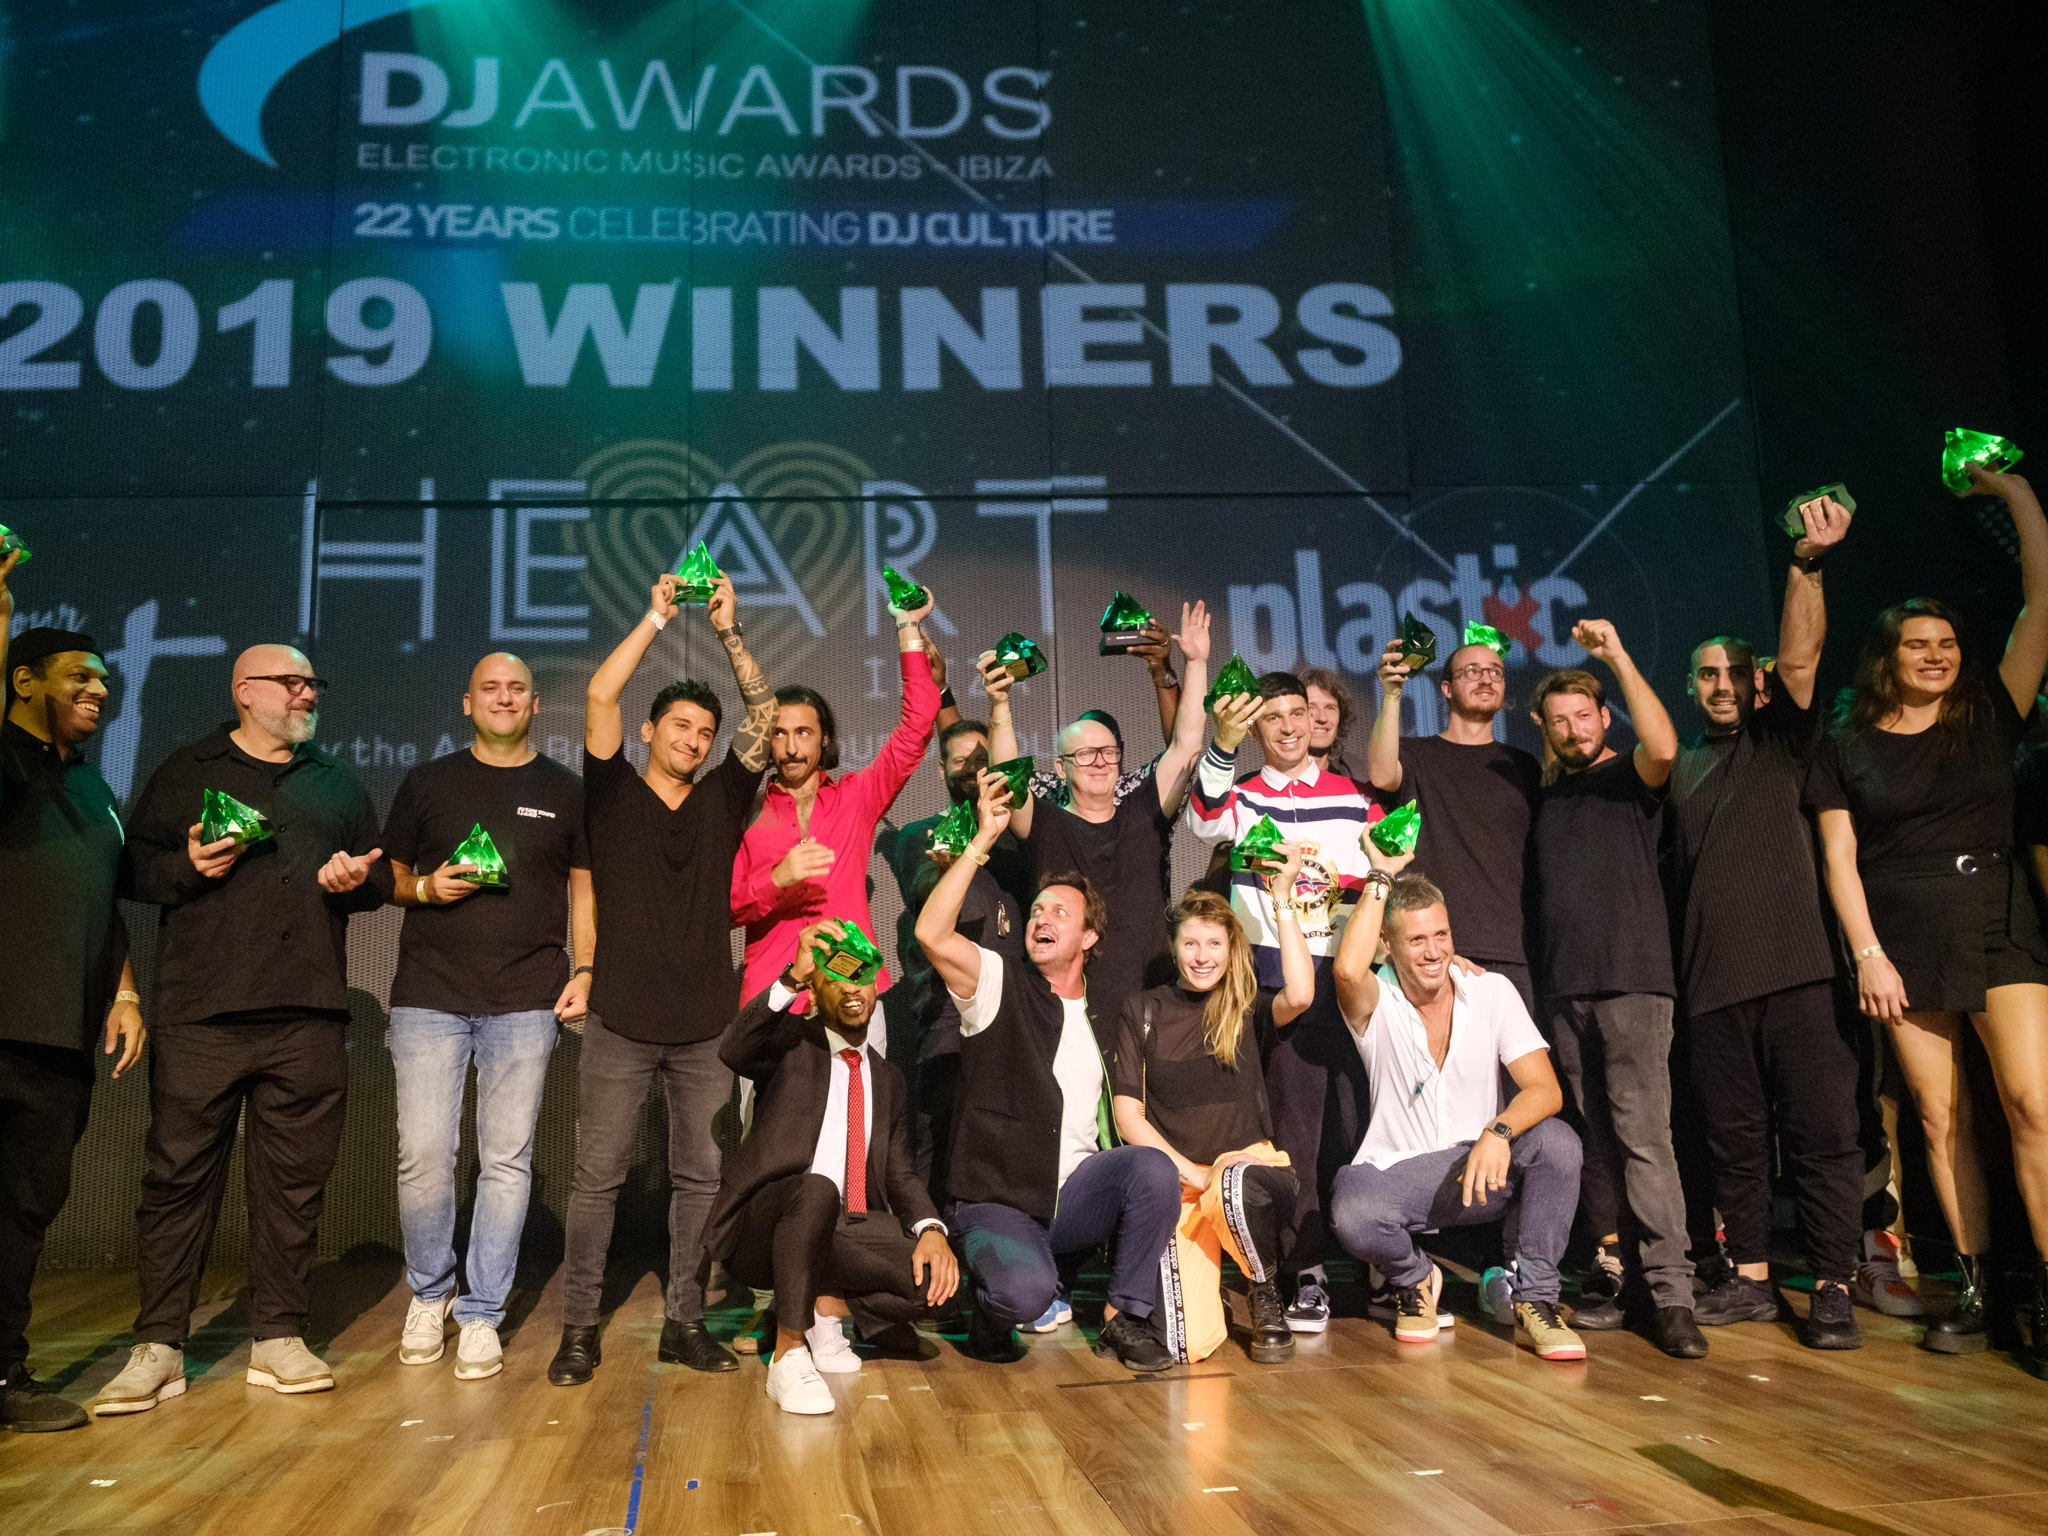 Ibiza dj awards 2019 winners